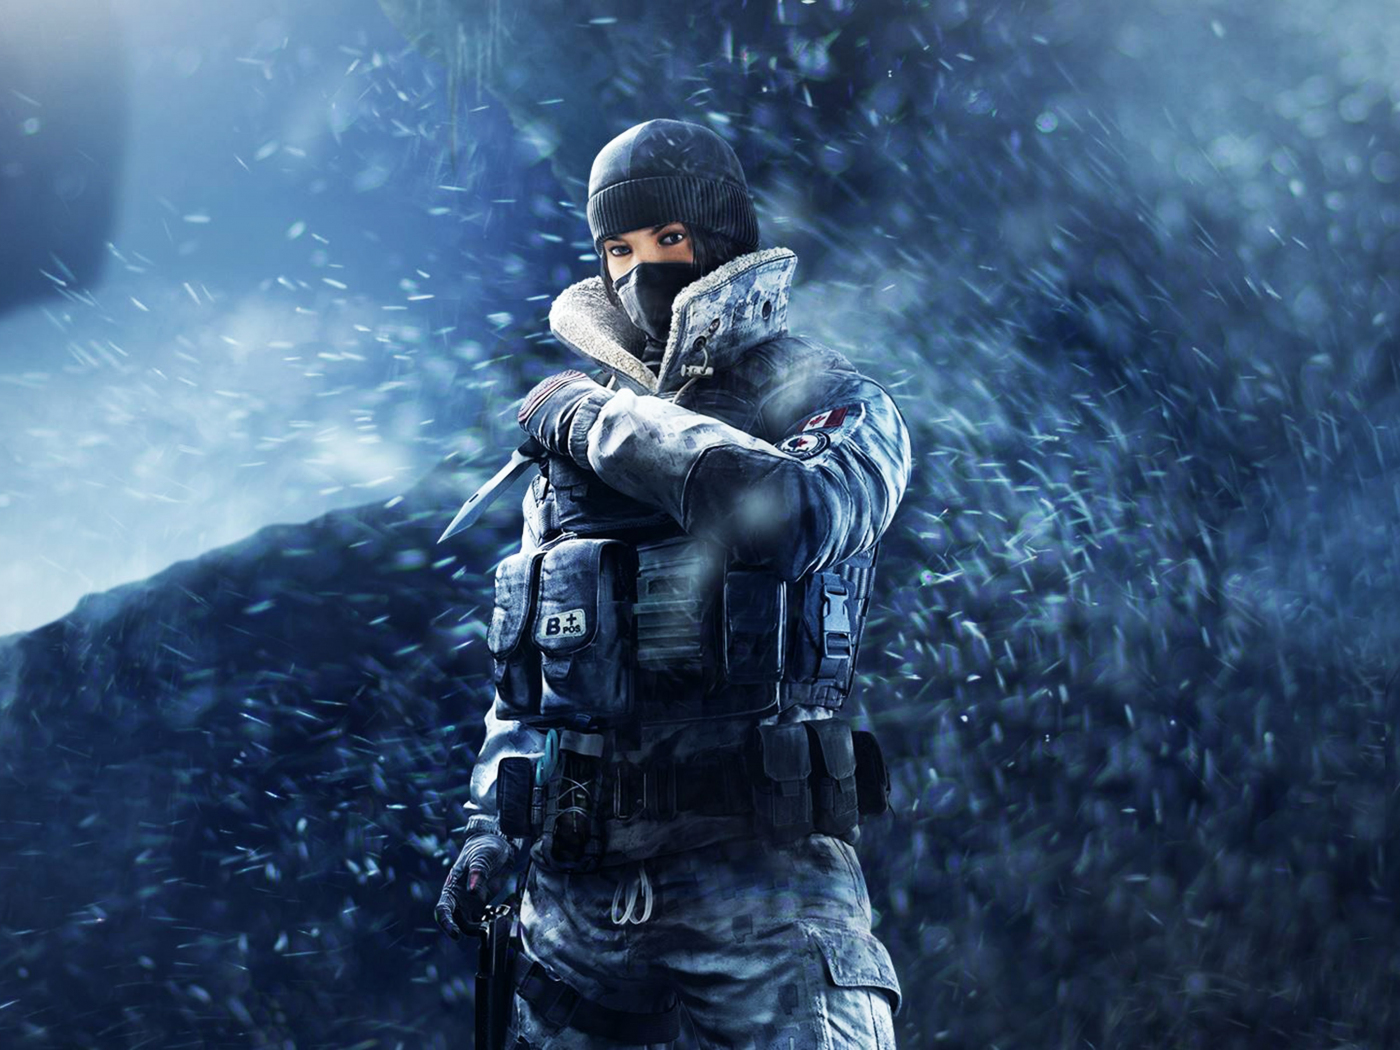 Tom Clancy's Rainbow Six Siege, girl soldier, frost, game, 1400x1050 wallpaper